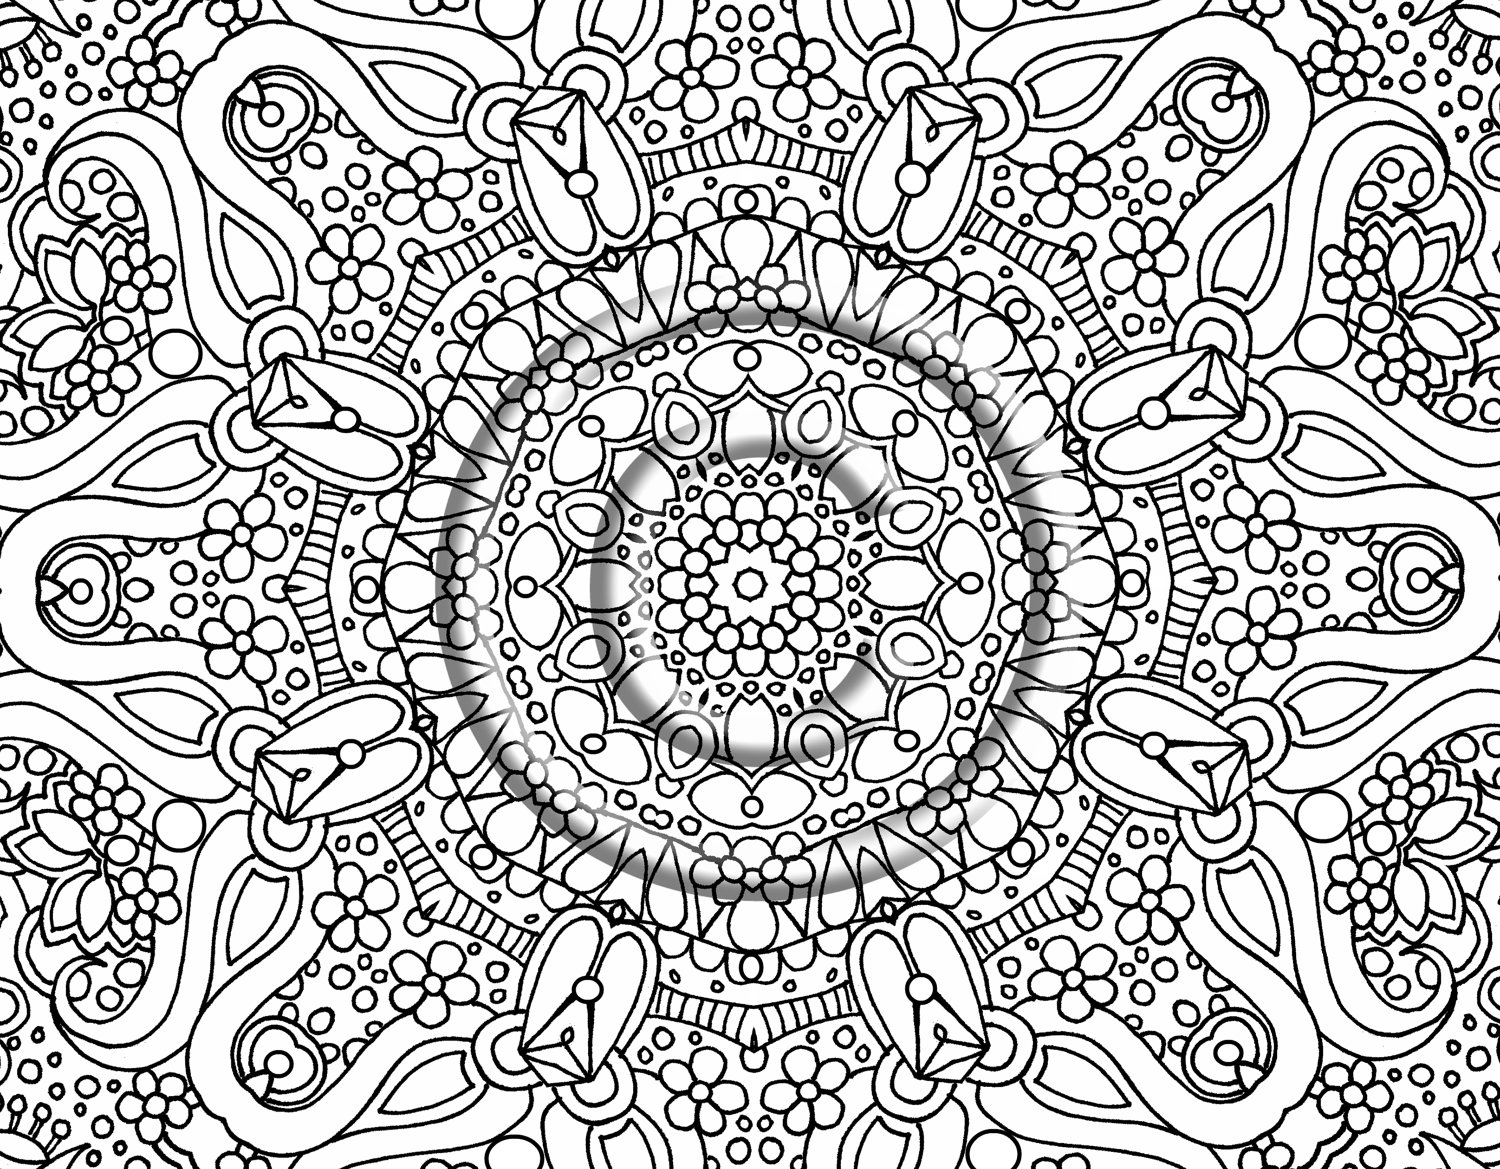 hard drawings to color free coloring page coloring adult difficult cameleon very hard color drawings to